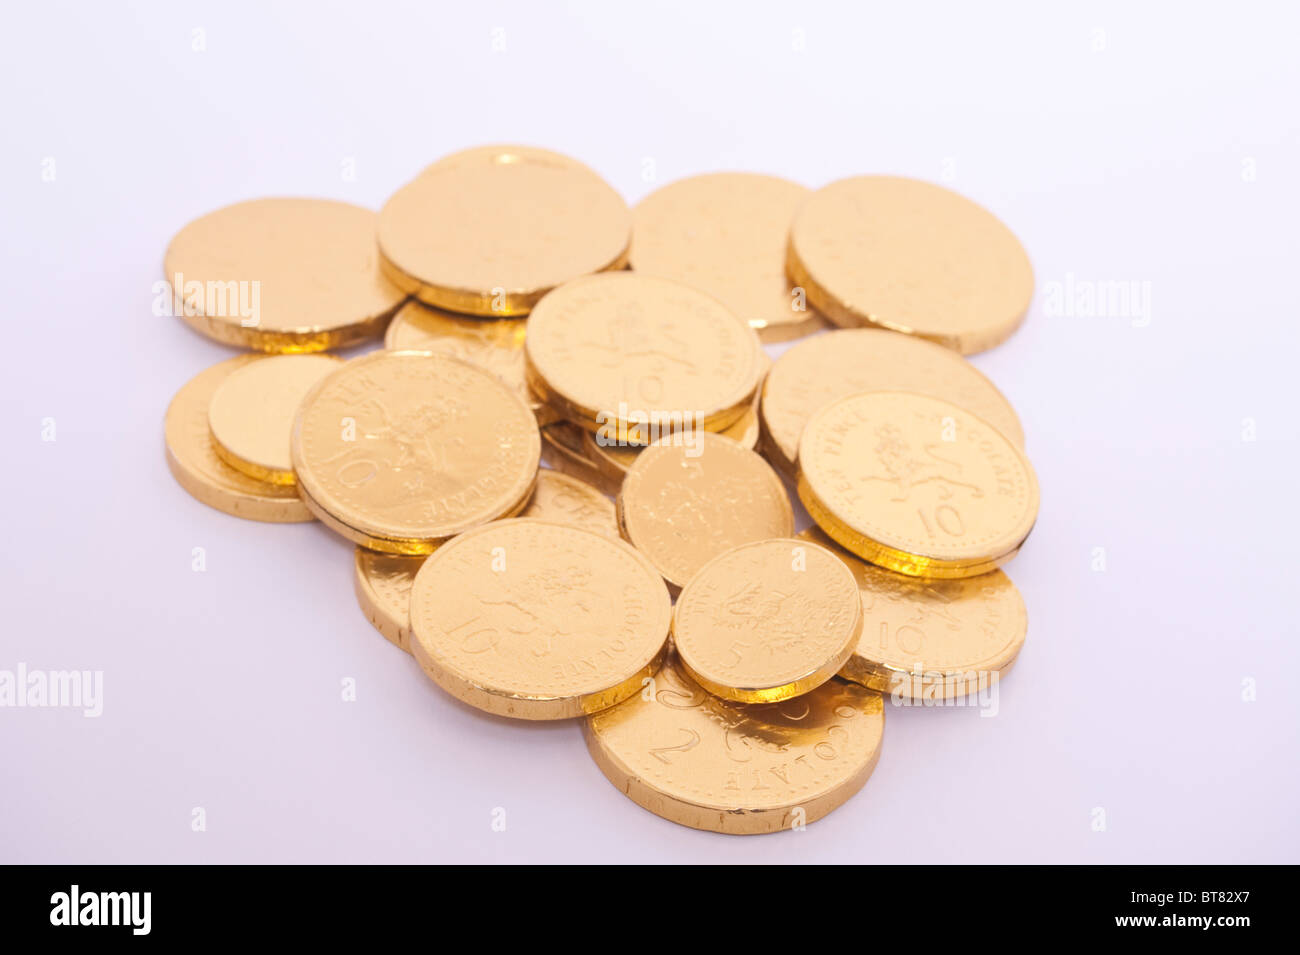 A close up photo of some gold chocolate coins against a white background - Stock Image